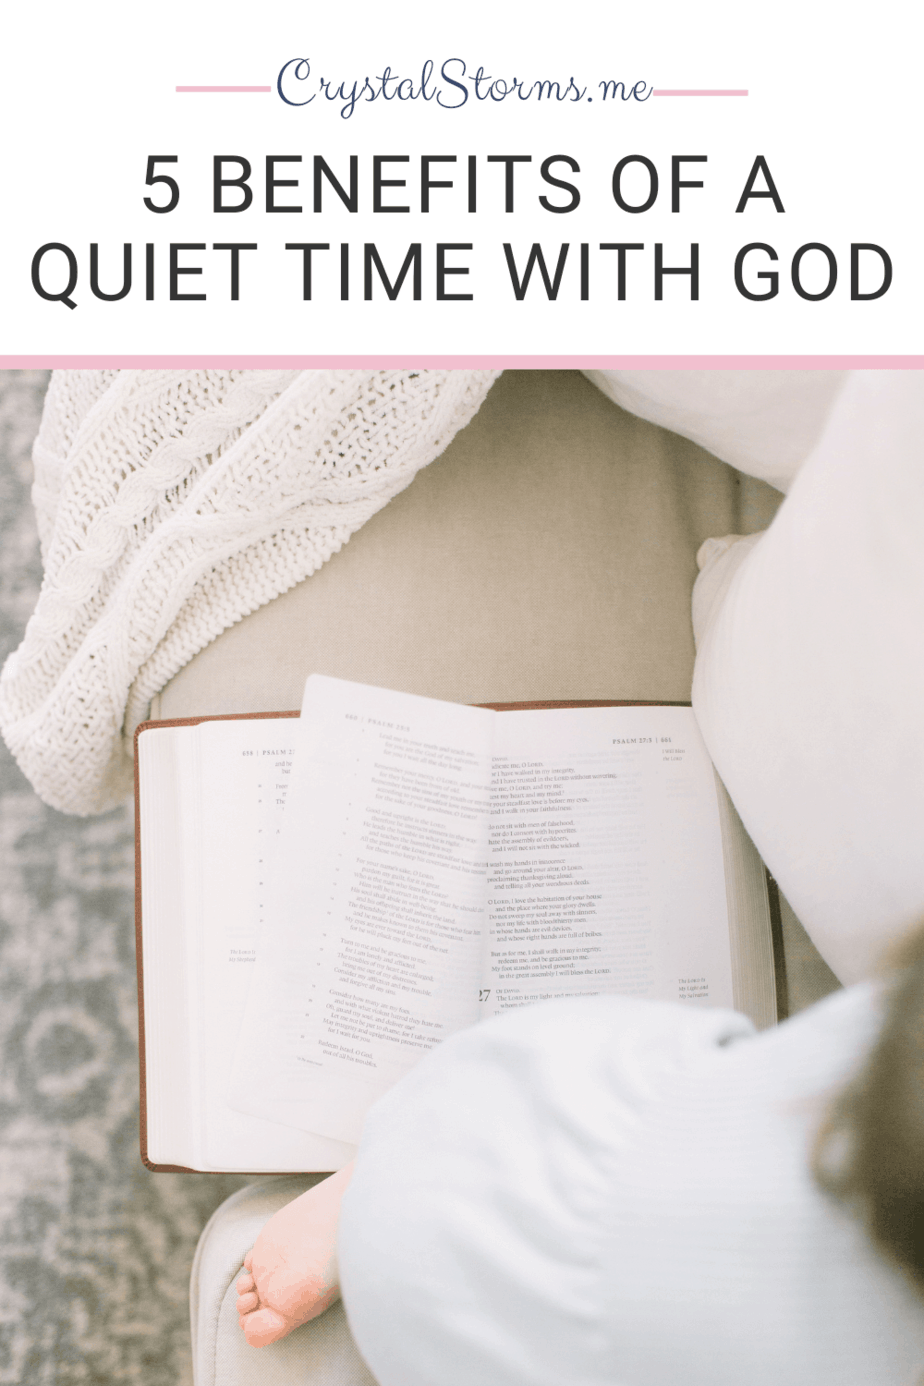 What are the benefits of a quiet time with God? A quiet time with God allows my heart to connect with His heart. Mark 1:35: Very early in the morning, while it was still dark, Jesus got up, left the house and went off to a solitary place, where He prayed. Discover 5 Benefits of a Quiet Time with God.